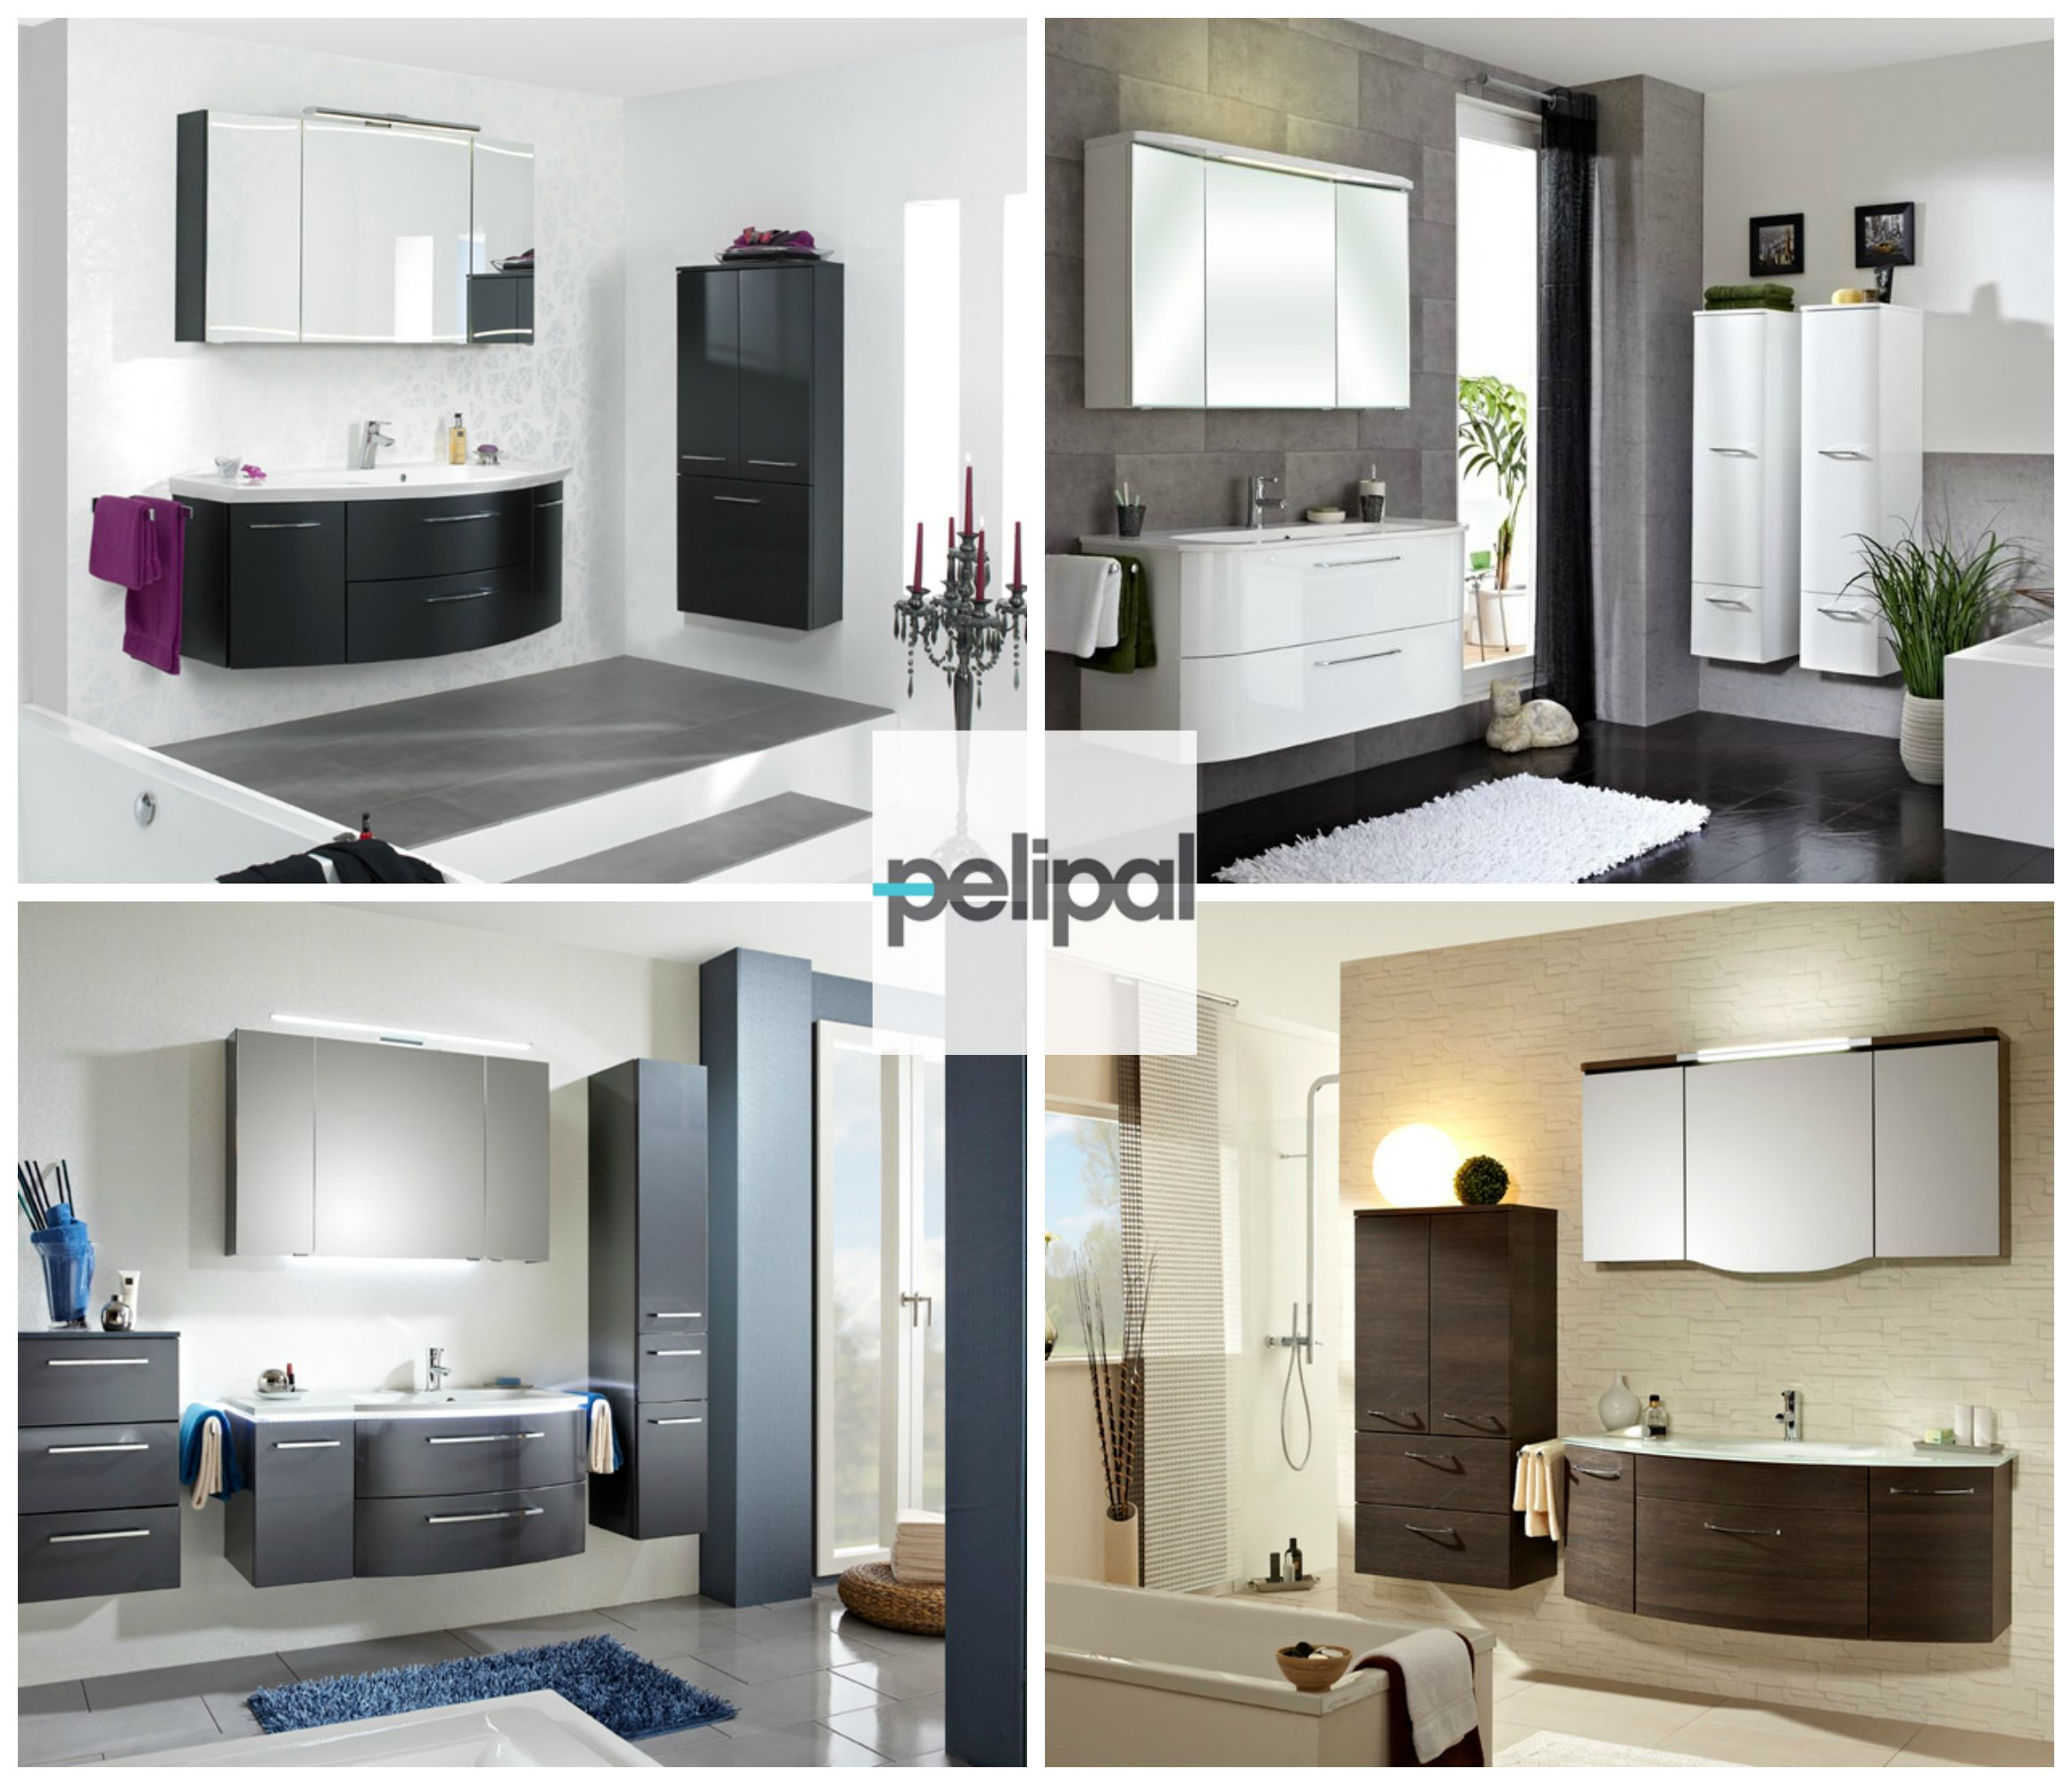 bathroom ikea example complete ideas irelandikea furniture at